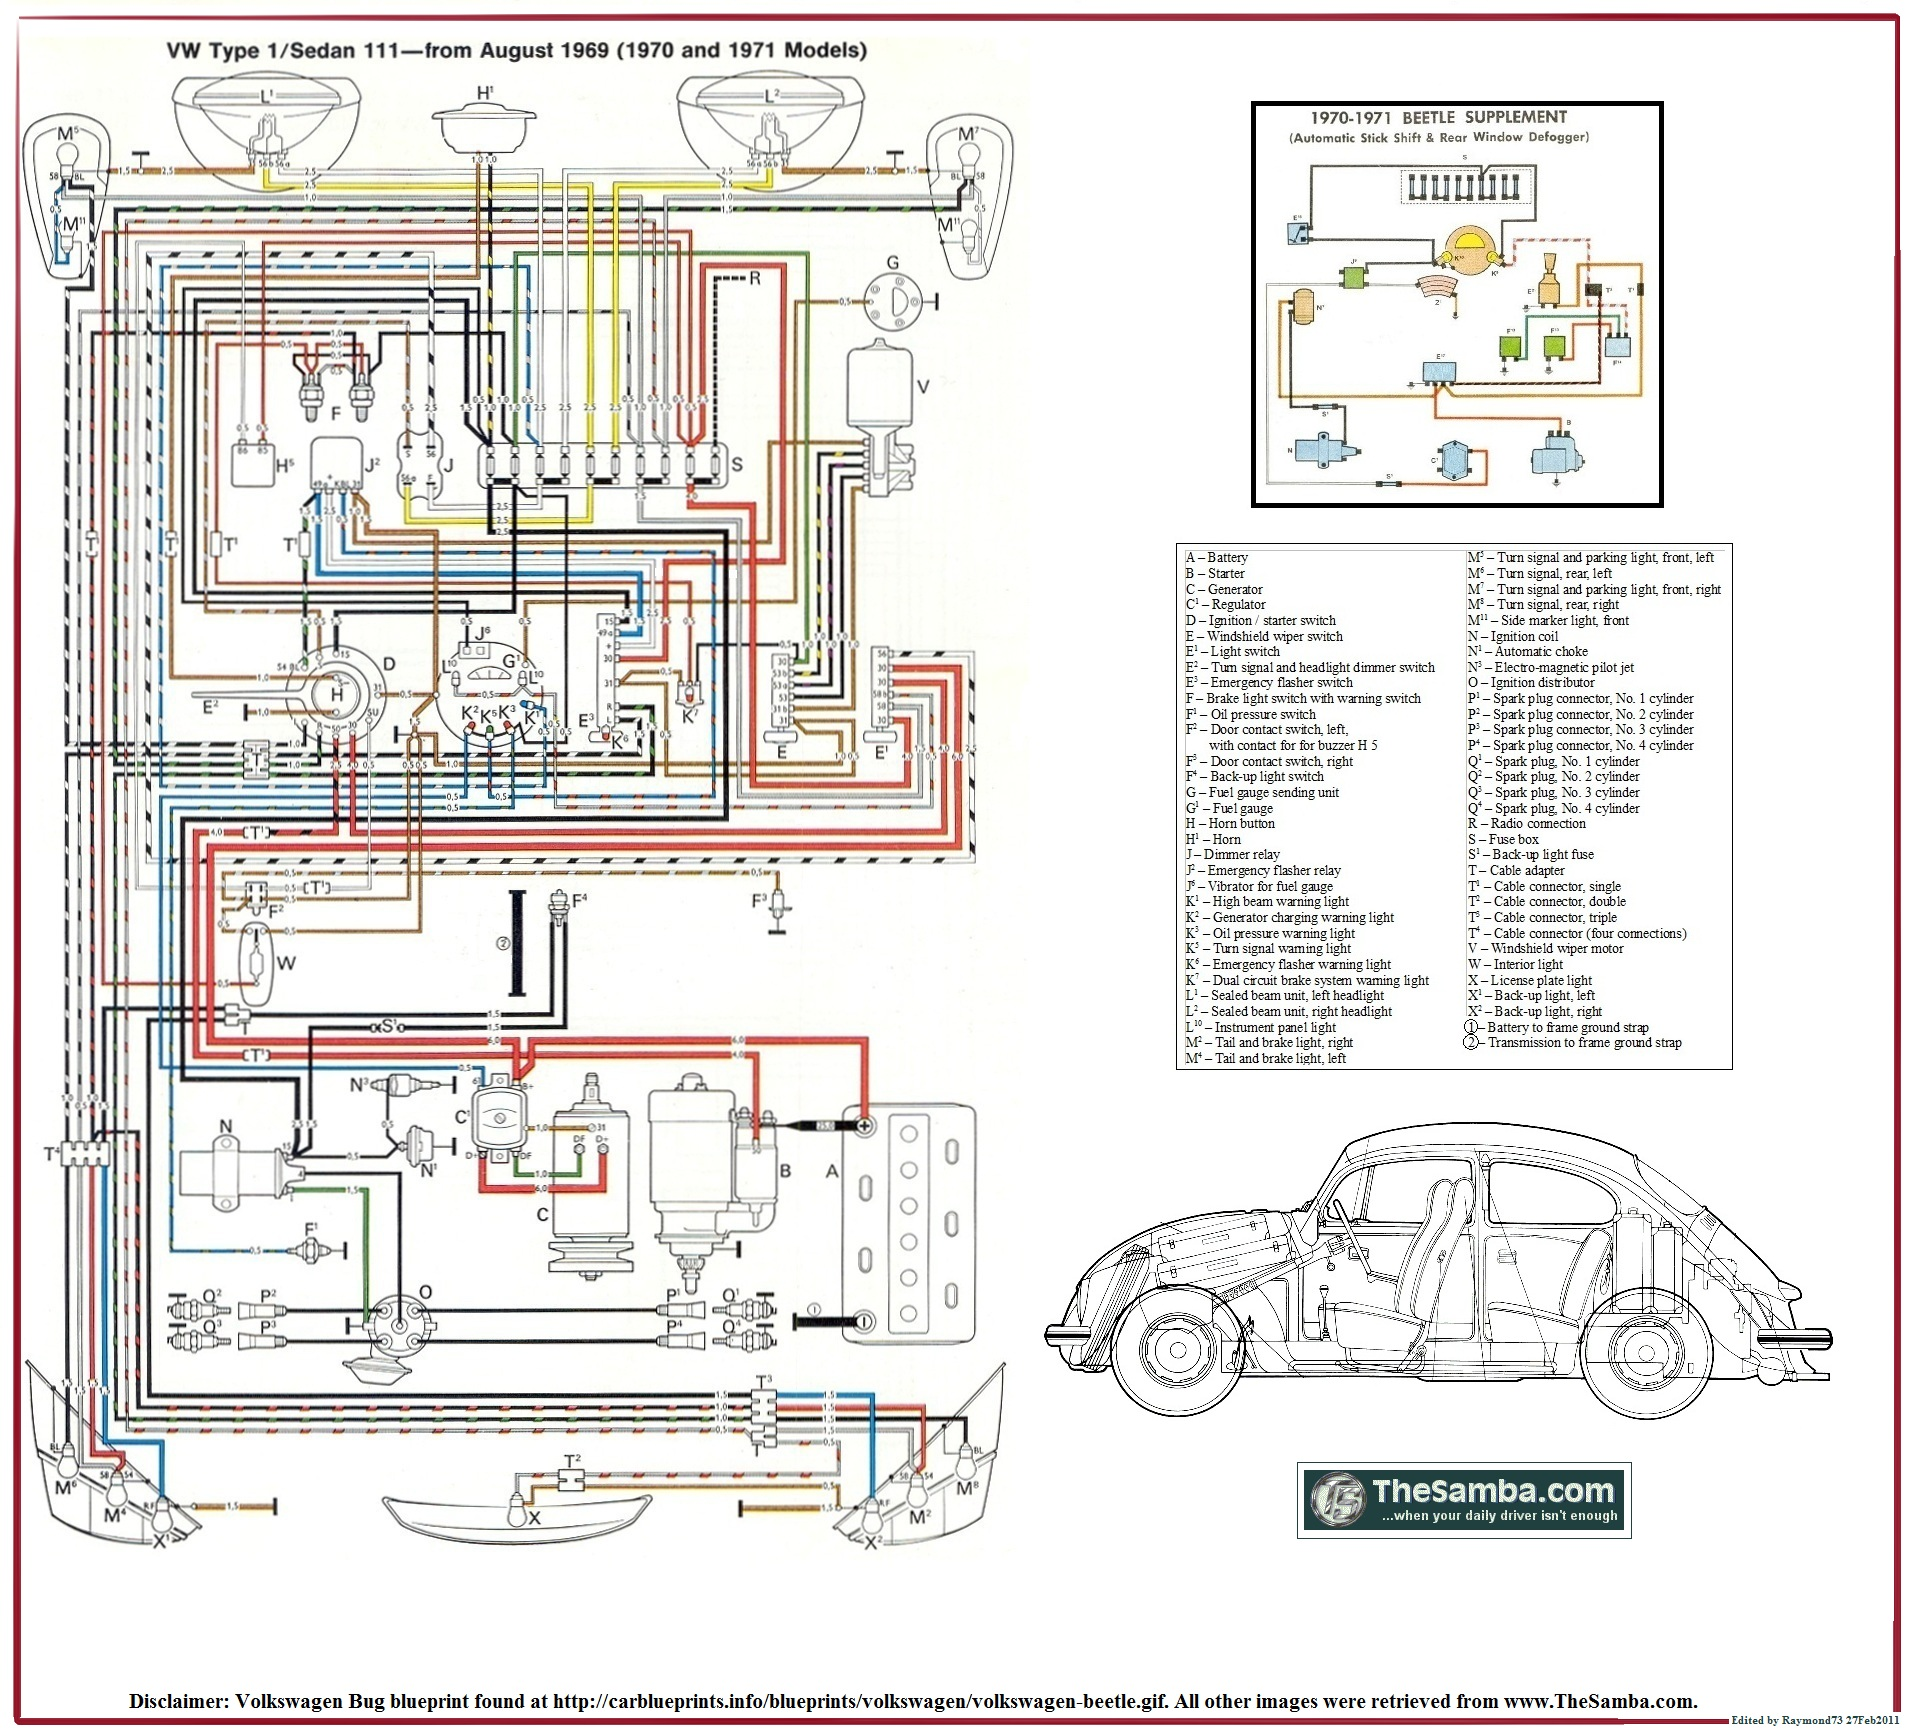 wiring diagram for 1968 volkswagen beetle today wiring diagram 1973 VW Wiring Diagram thesamba com beetle late model super 1968 up view topic volkswagen super beetle wiring diagram wiring diagram for 1968 volkswagen beetle